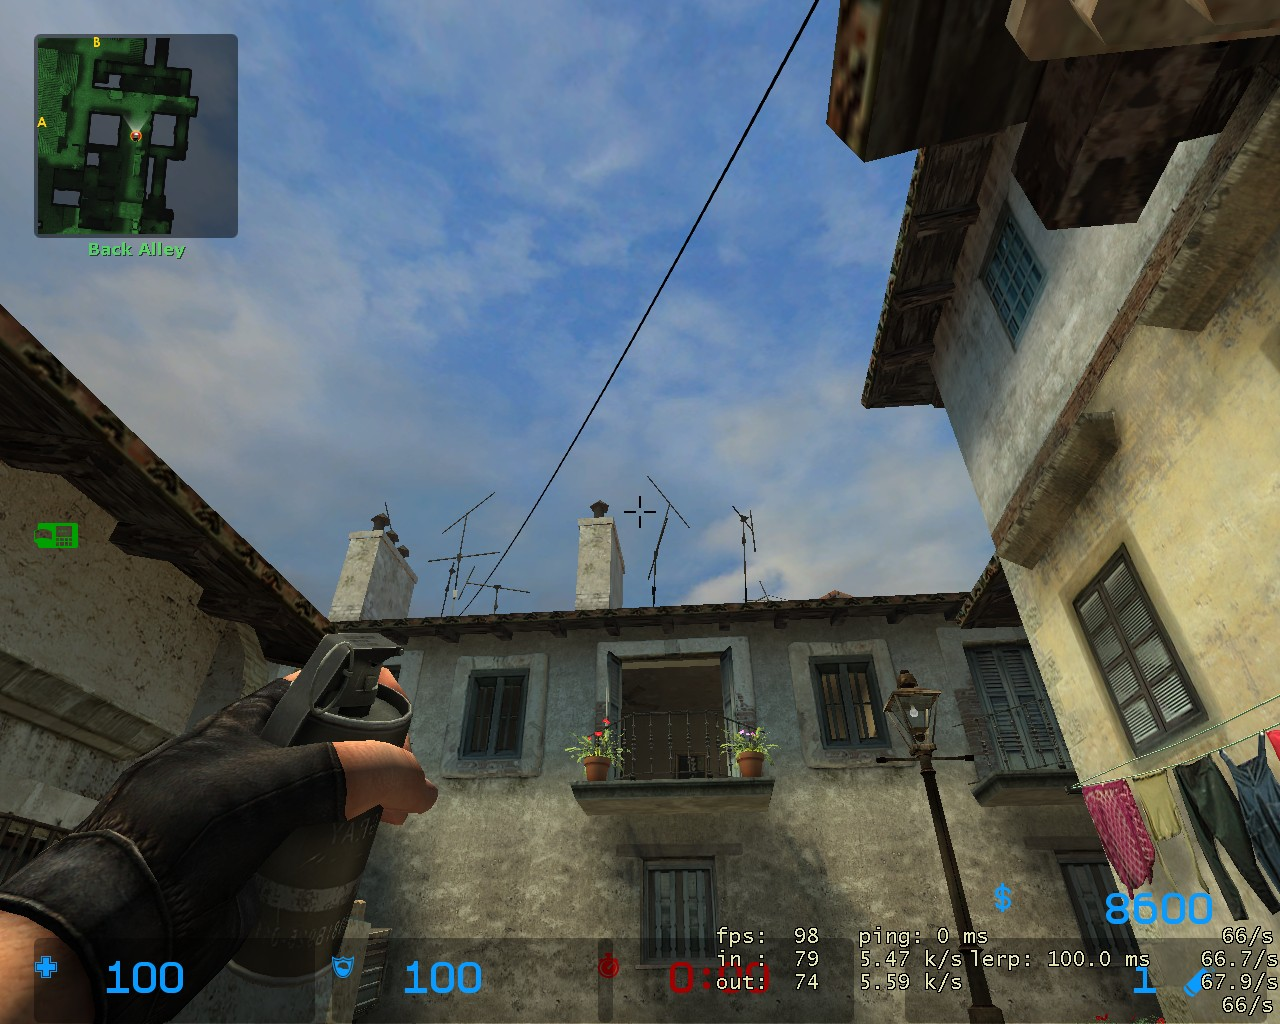 Ian's friend prime-de_inferno-pit-smoke-jpg